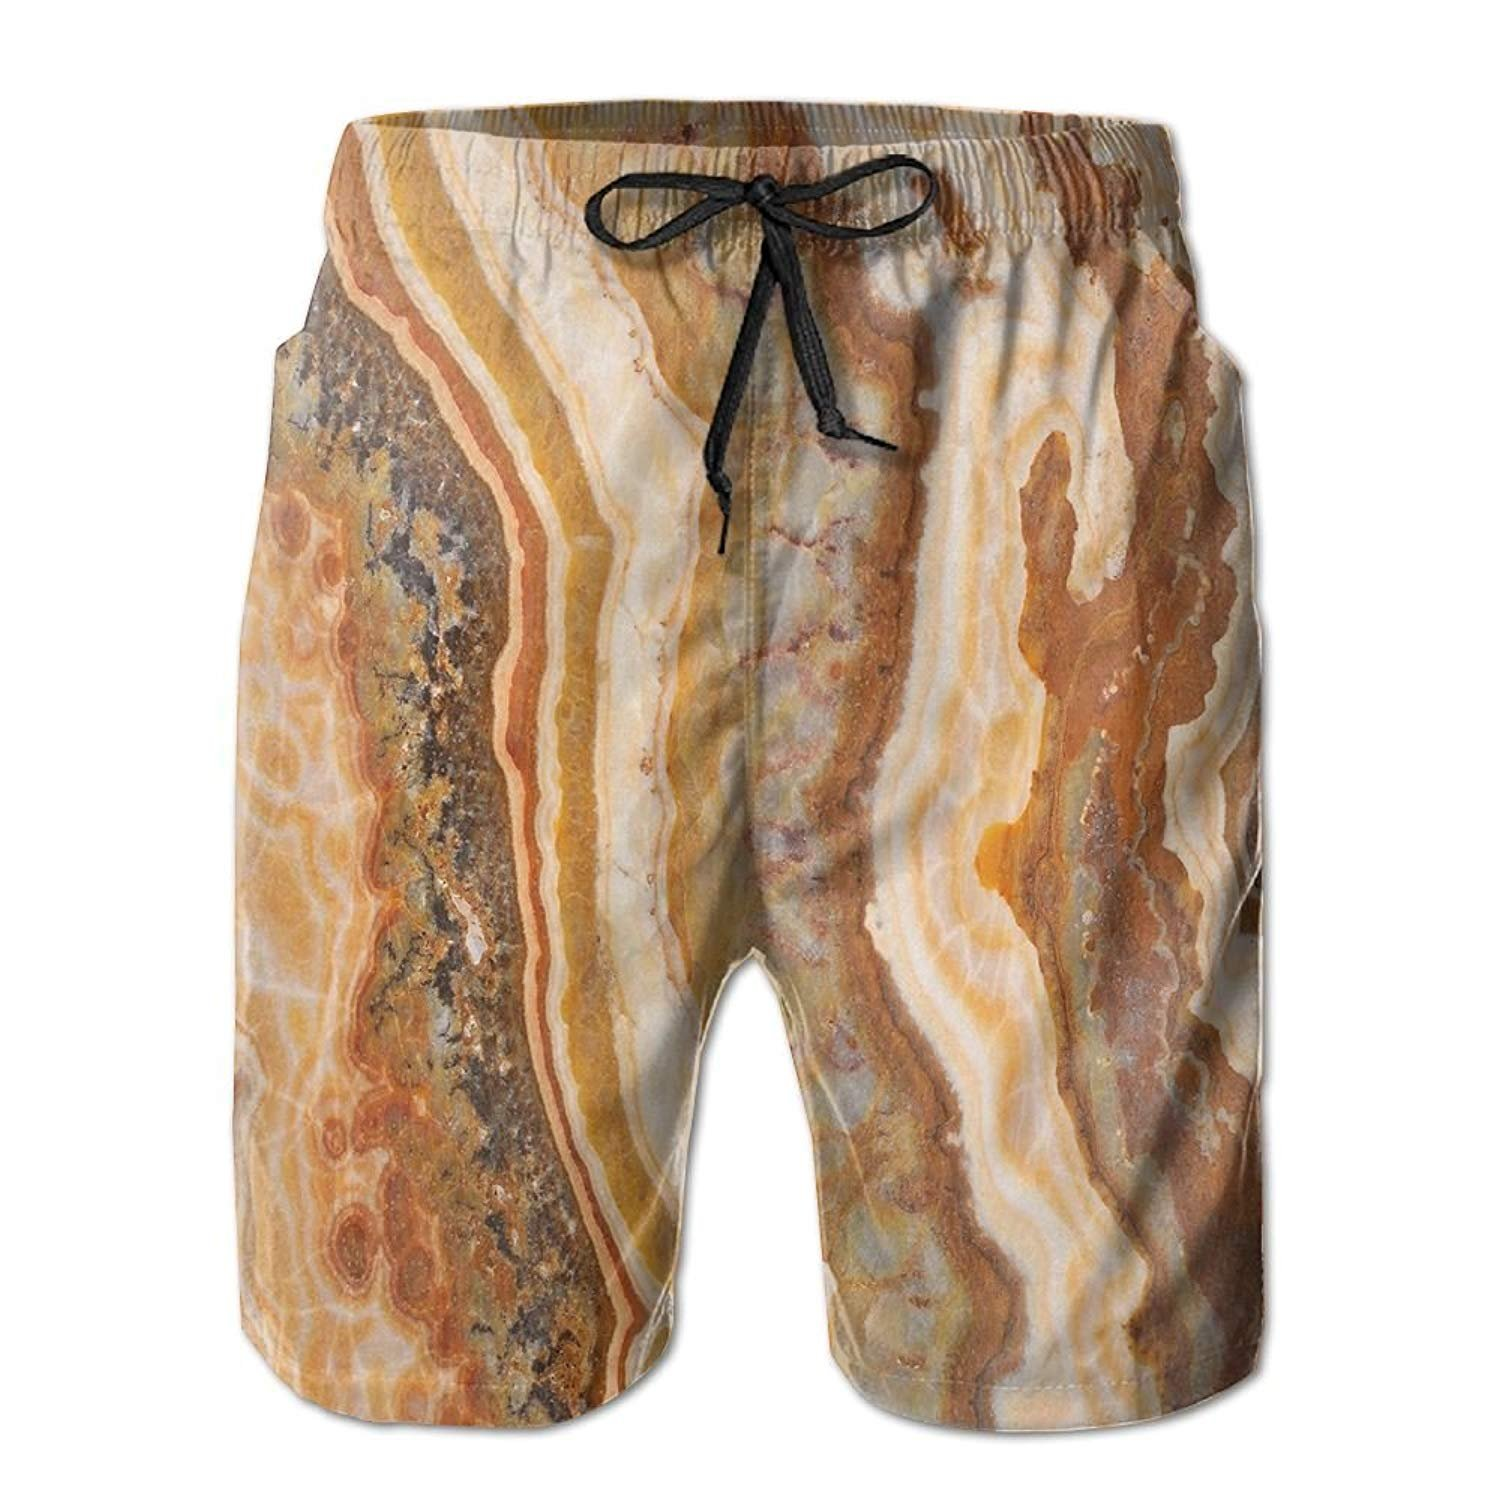 Beach Shorts Light Blue Marble Pattern with White Cracks Man'S Quick-Drying Swim Trunks Sports Board Pants